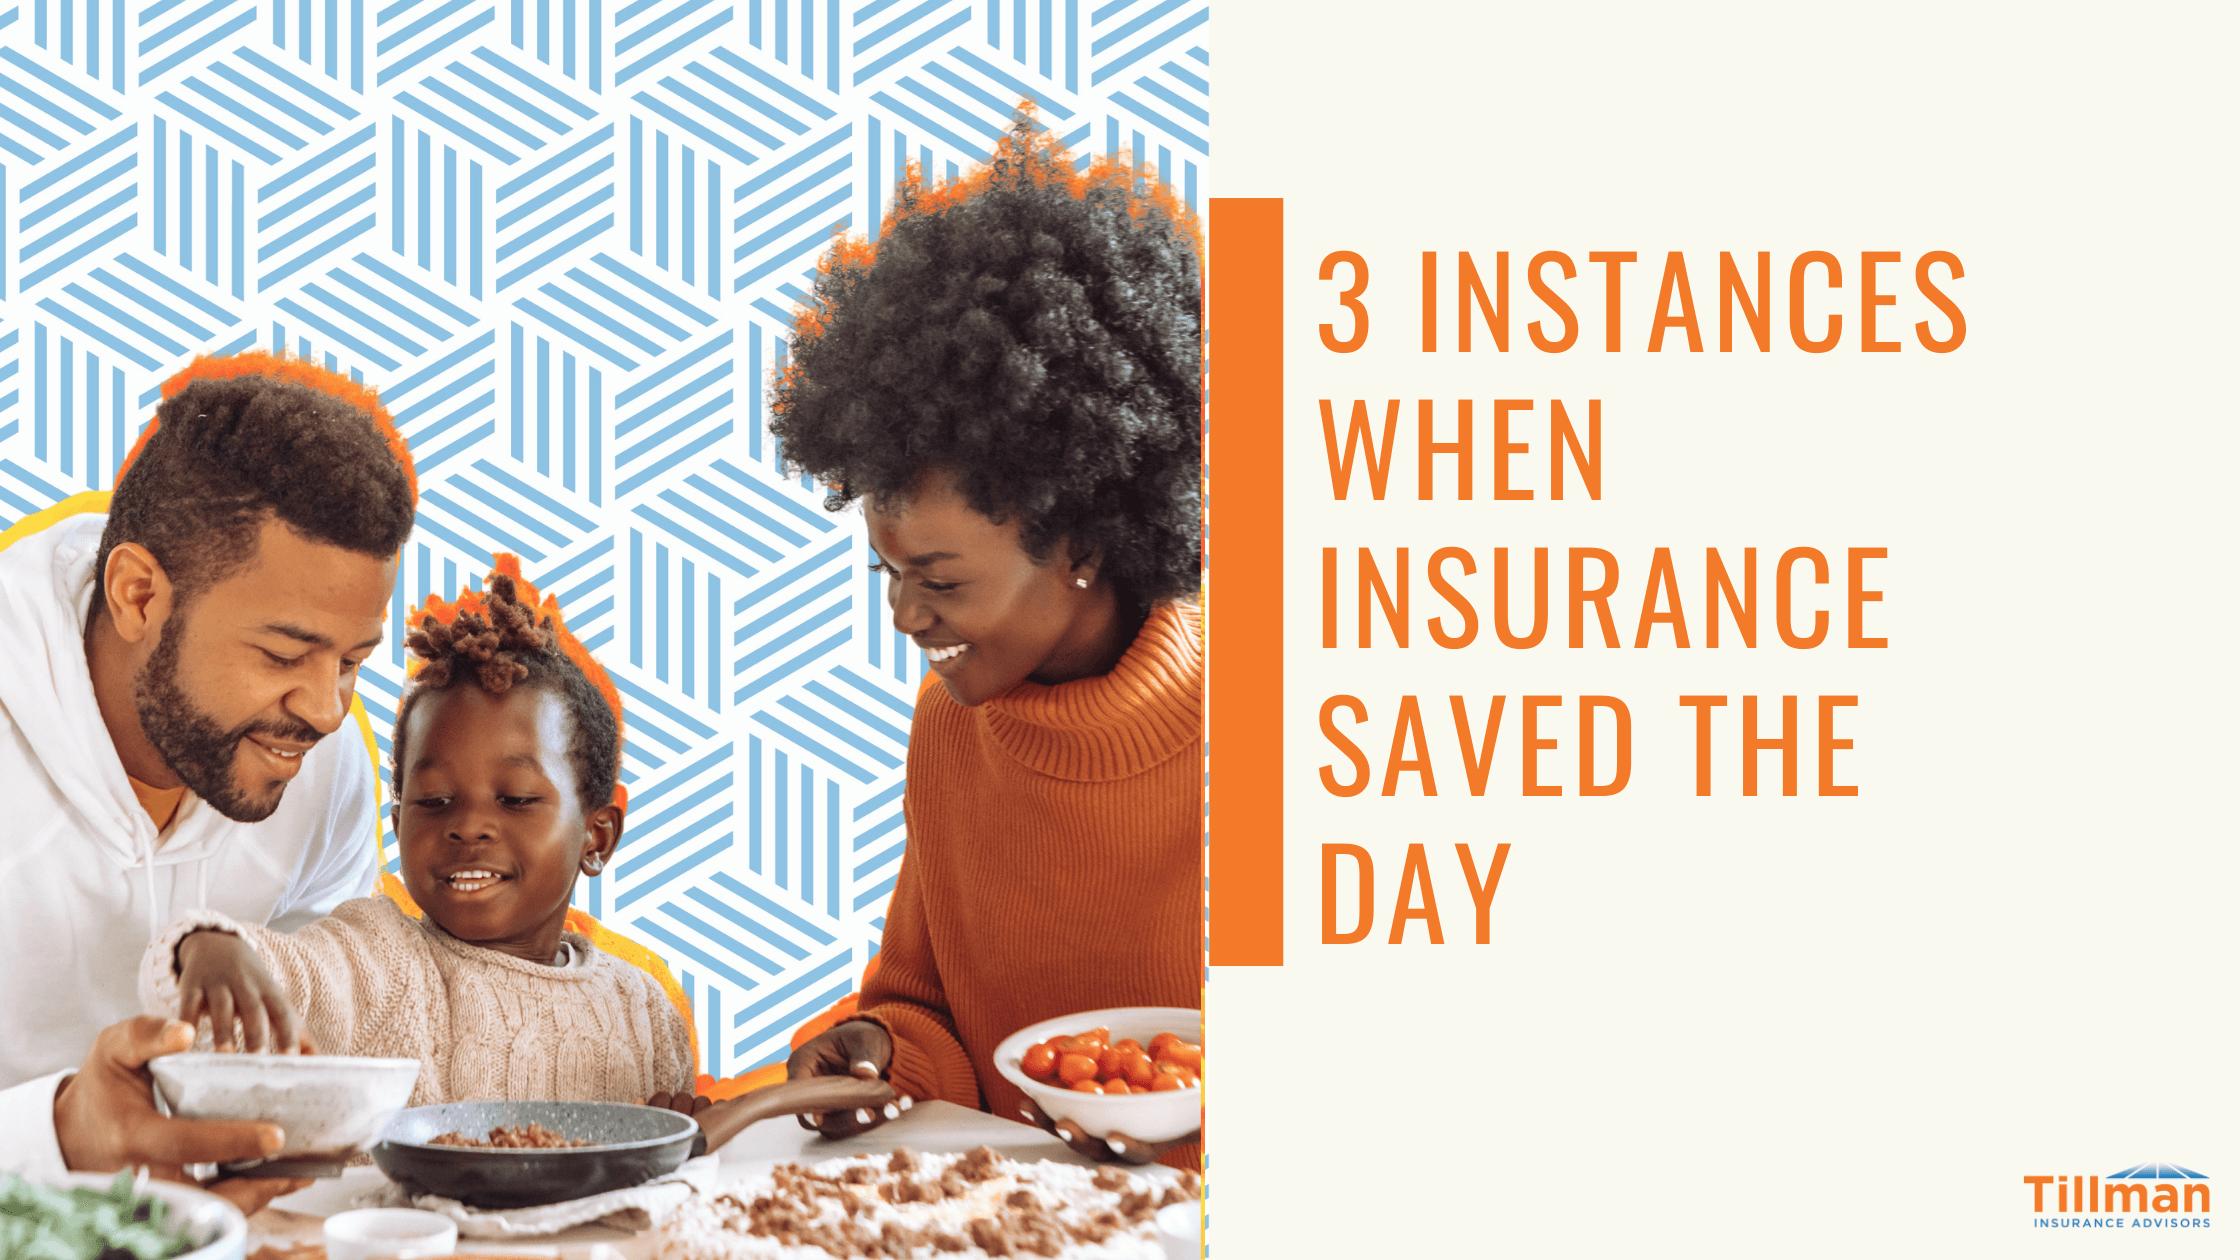 Life Insurance Saved The Day